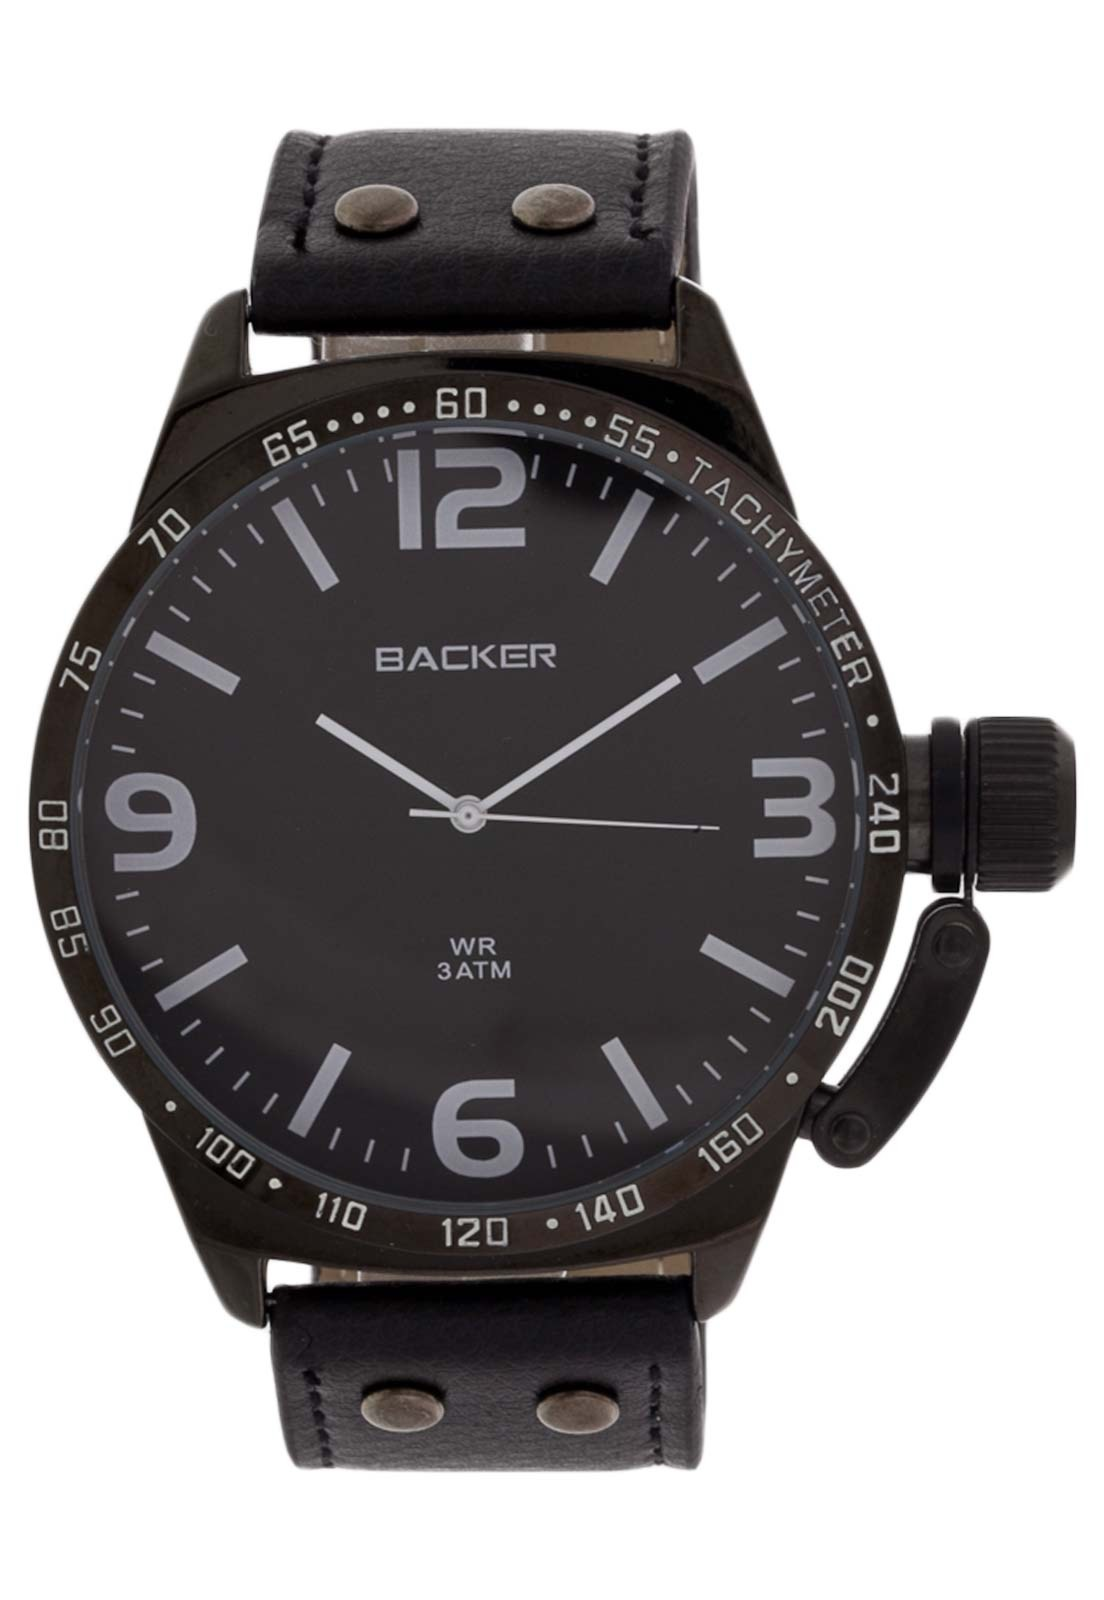 RELÓGIO BACKER MASCULINO 3188112M - cod interno 030001438